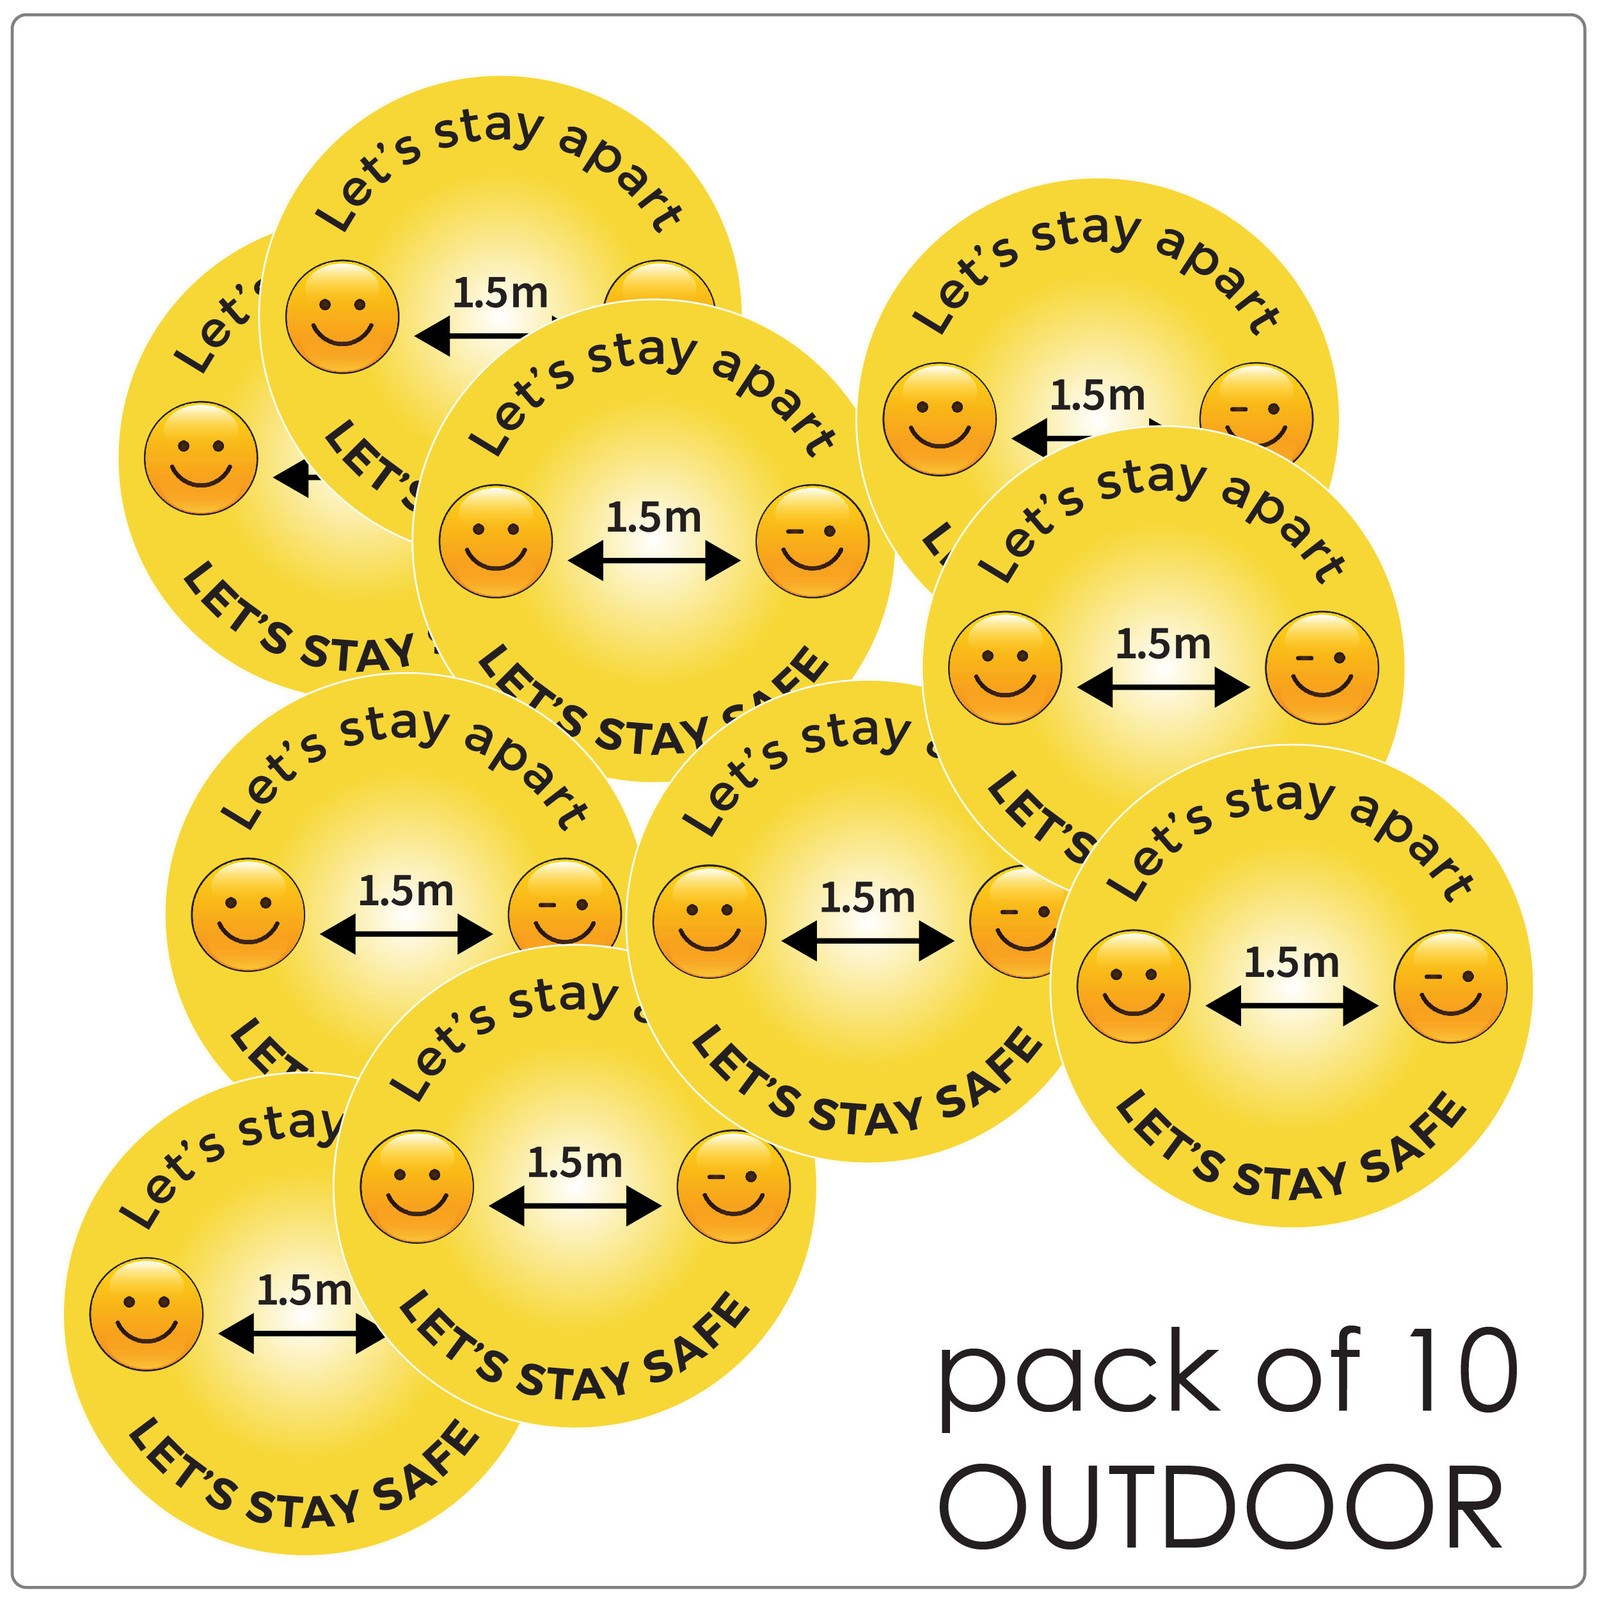 physical distancing floor sticker for outdoors, pack of 10, emoji Self-adhesive Corona floor marker safety floor signs for COVID-19